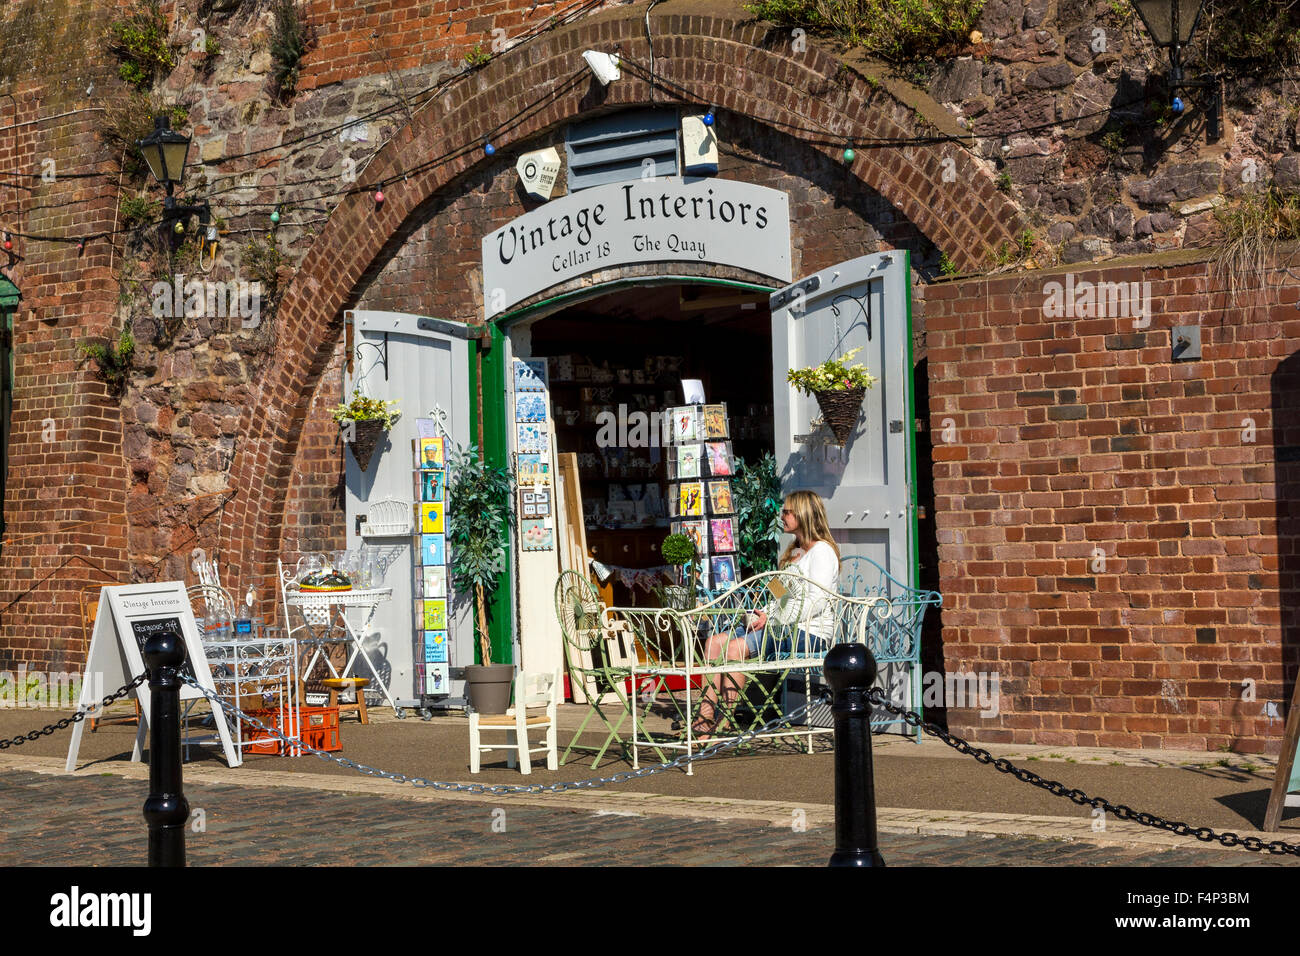 A Quiet, Sunny Moment for an Independent Shopkeeper in the Historic Old Cellars, Exeter Quay, Devon. - Stock Image